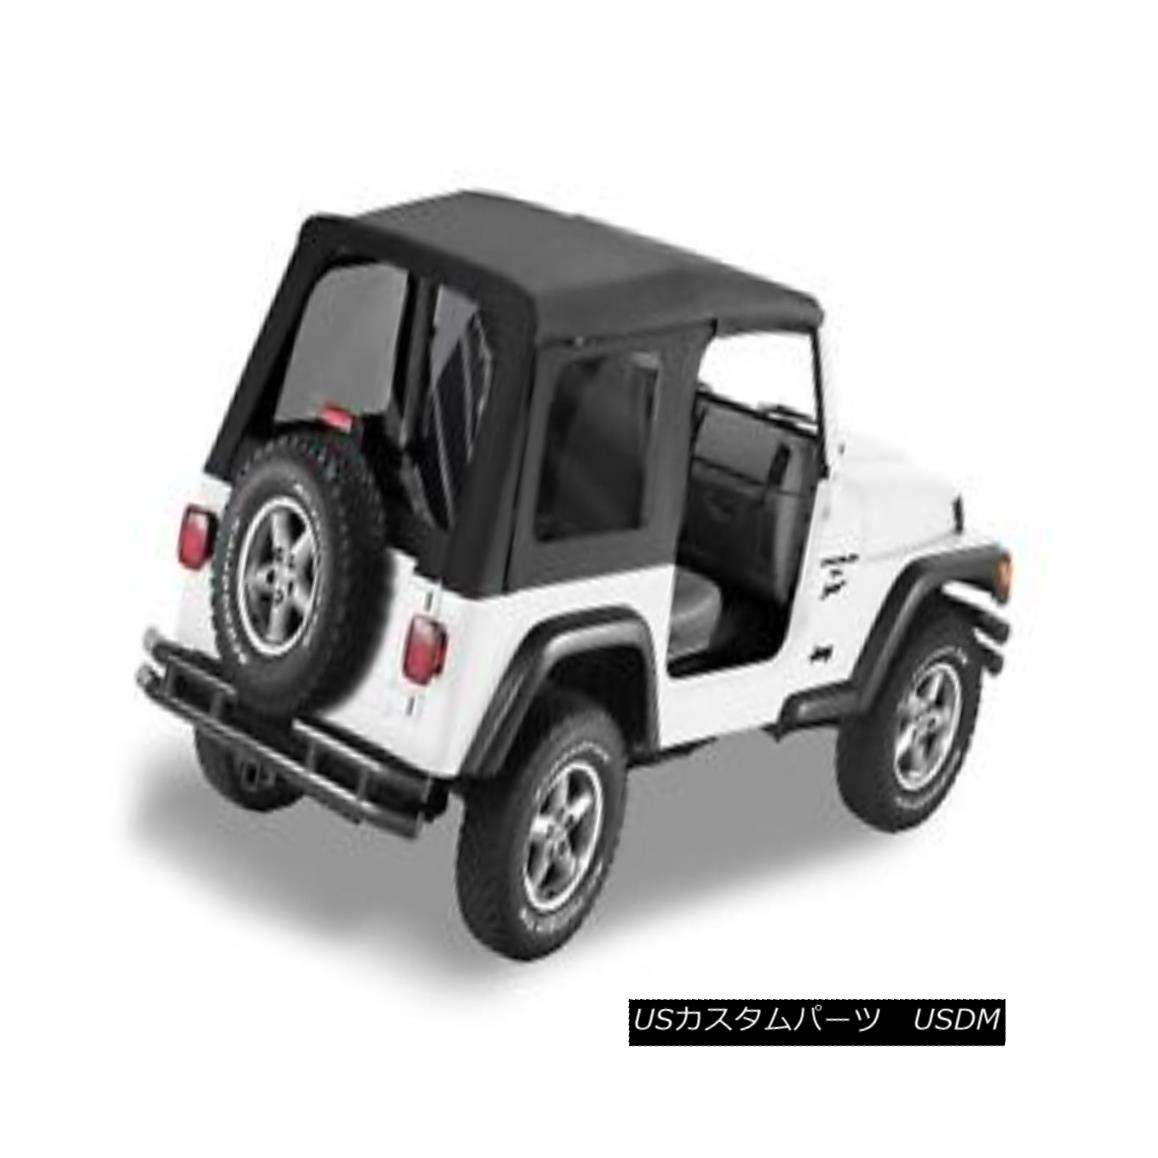 幌・ソフトトップ Bestop 51180-15 Jeep Replace-a-Top Soft Top Black Denim Bestop 51180-15 Jeep Replace-a-Topソフトトップブラックデニム